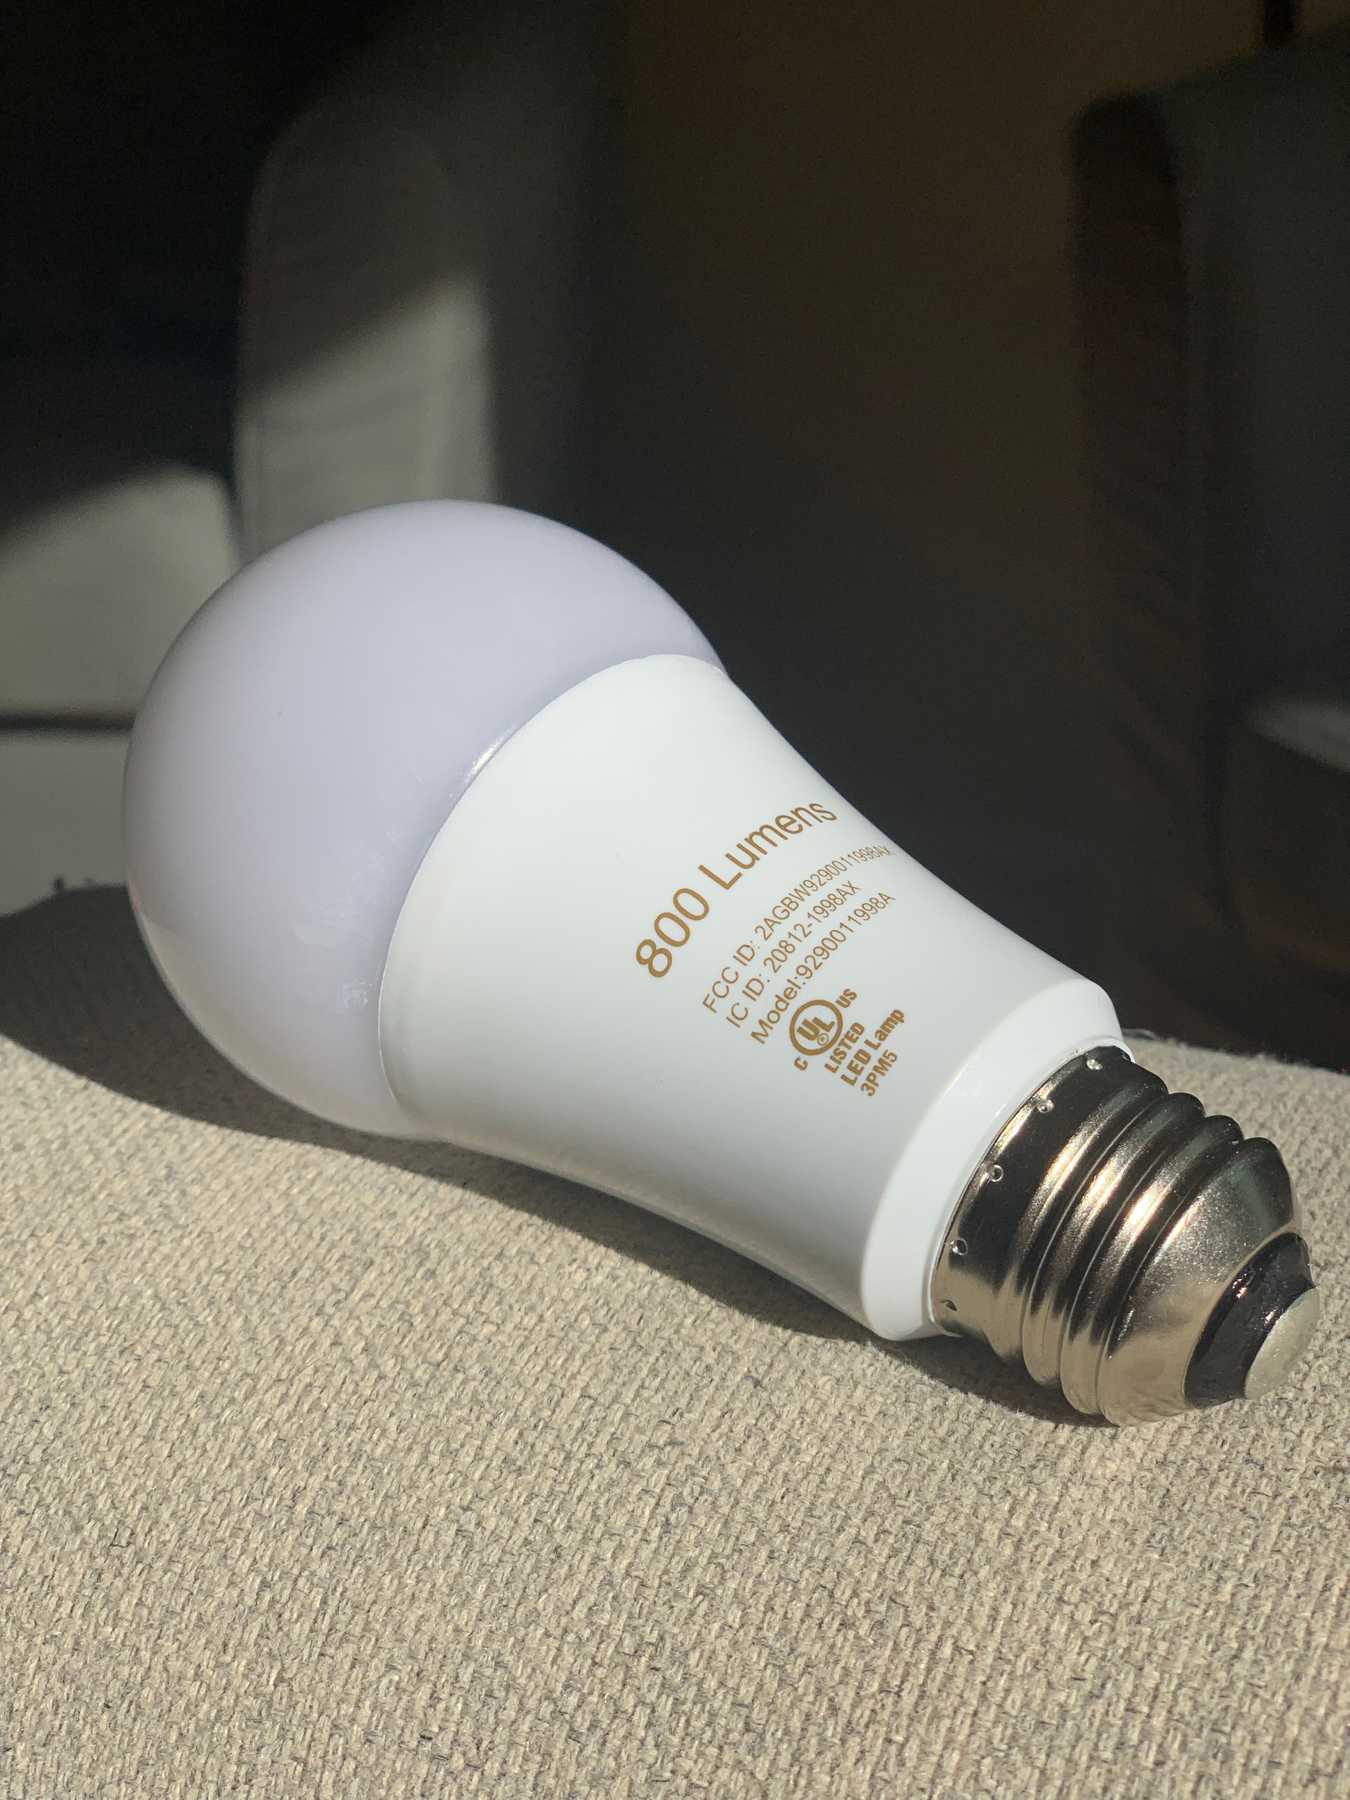 Philips Hue bulb with replaced diffuser